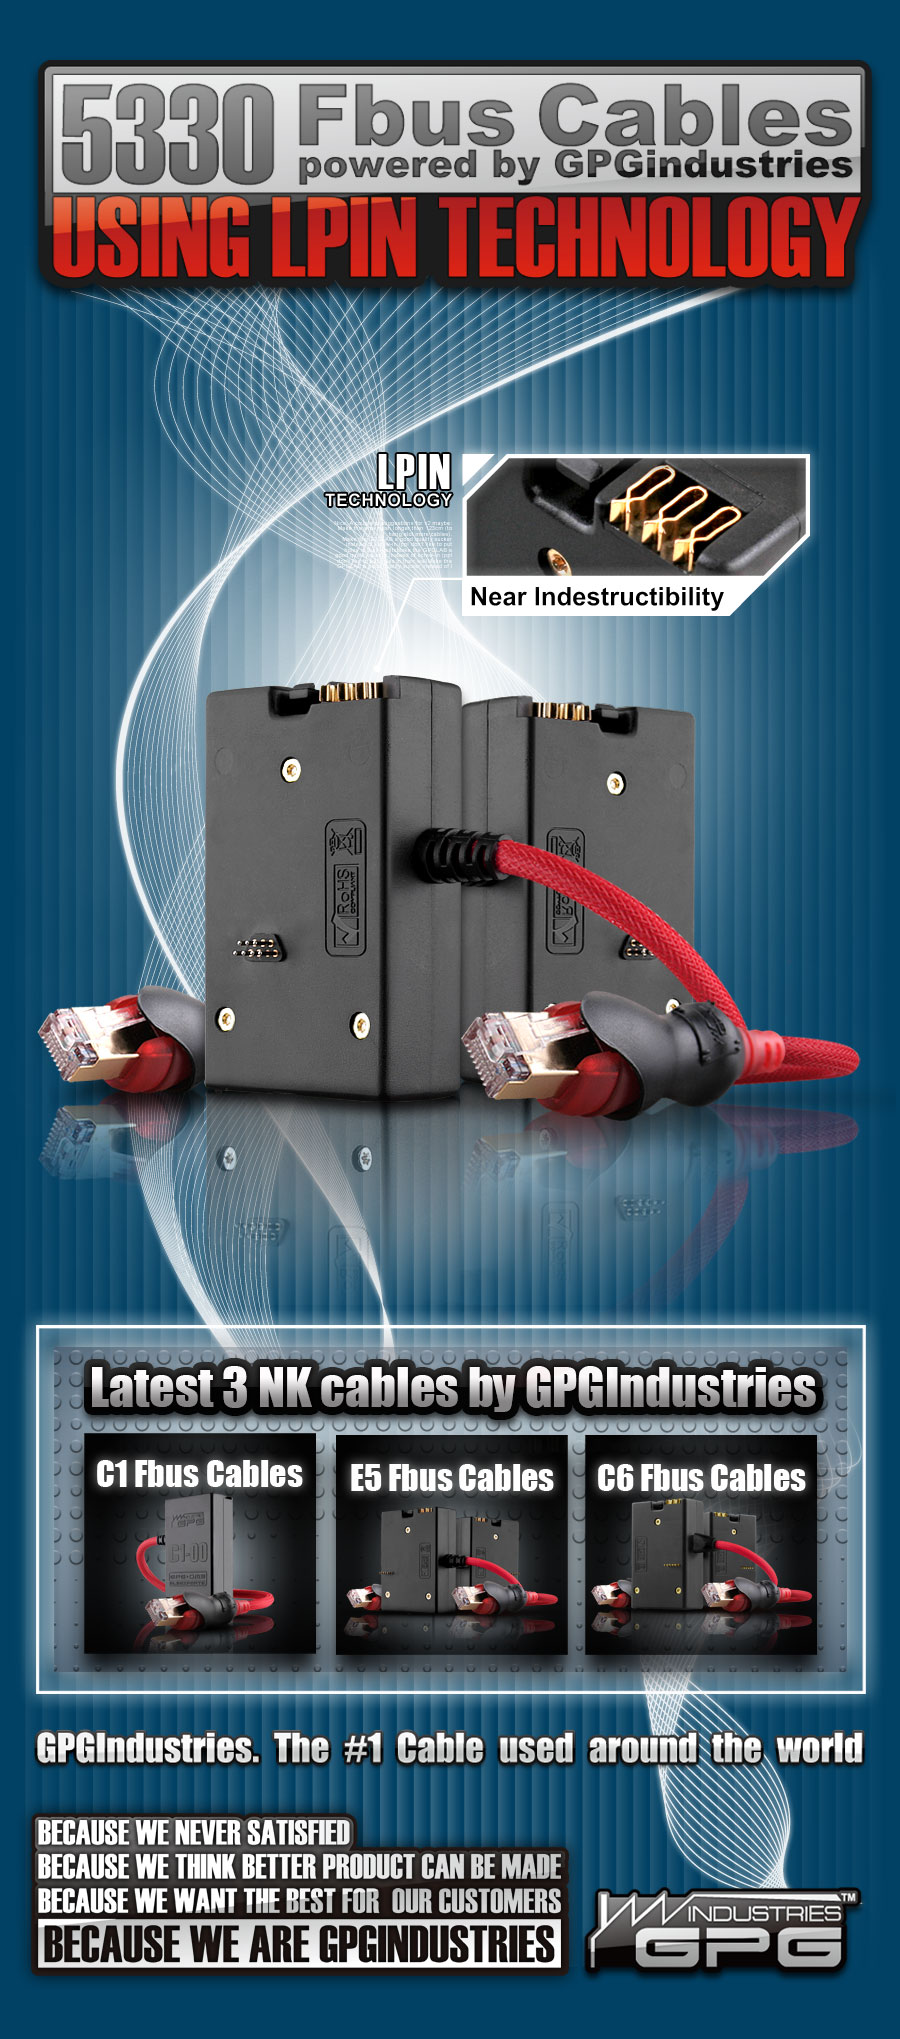 5330 Fbus cable by GPGIndustries